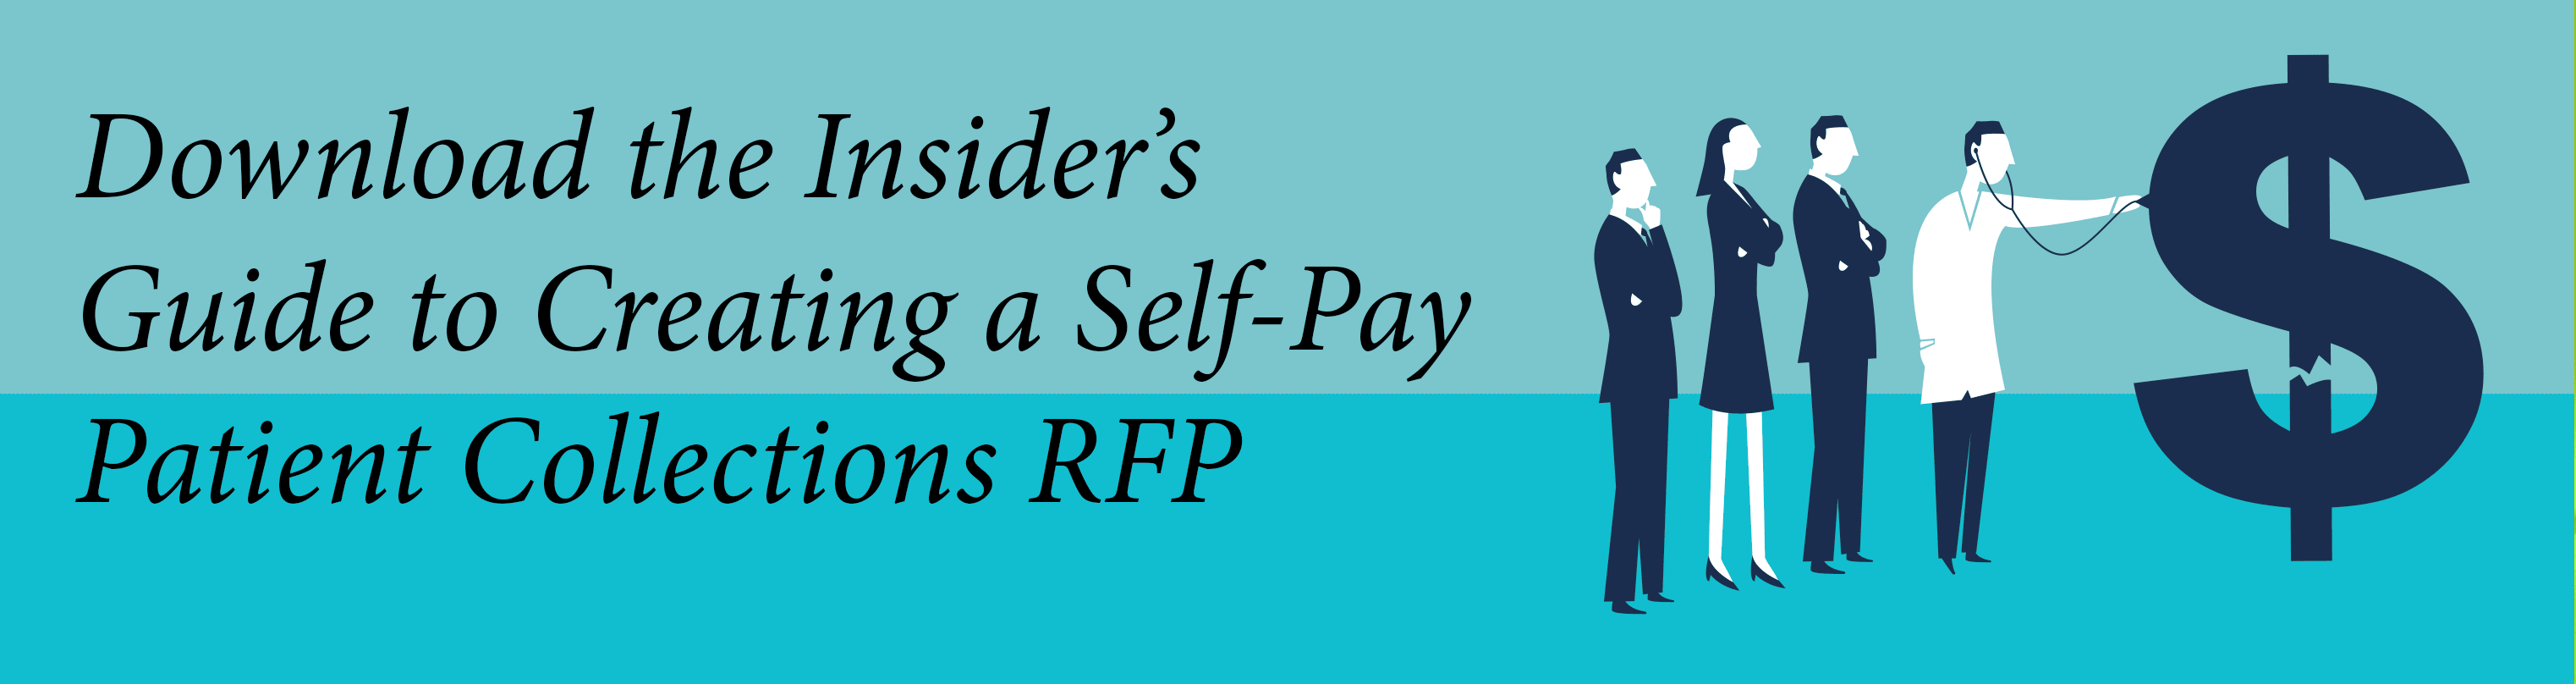 Self-Pay Patient Collections, RFP for Self-Pay Healthcare